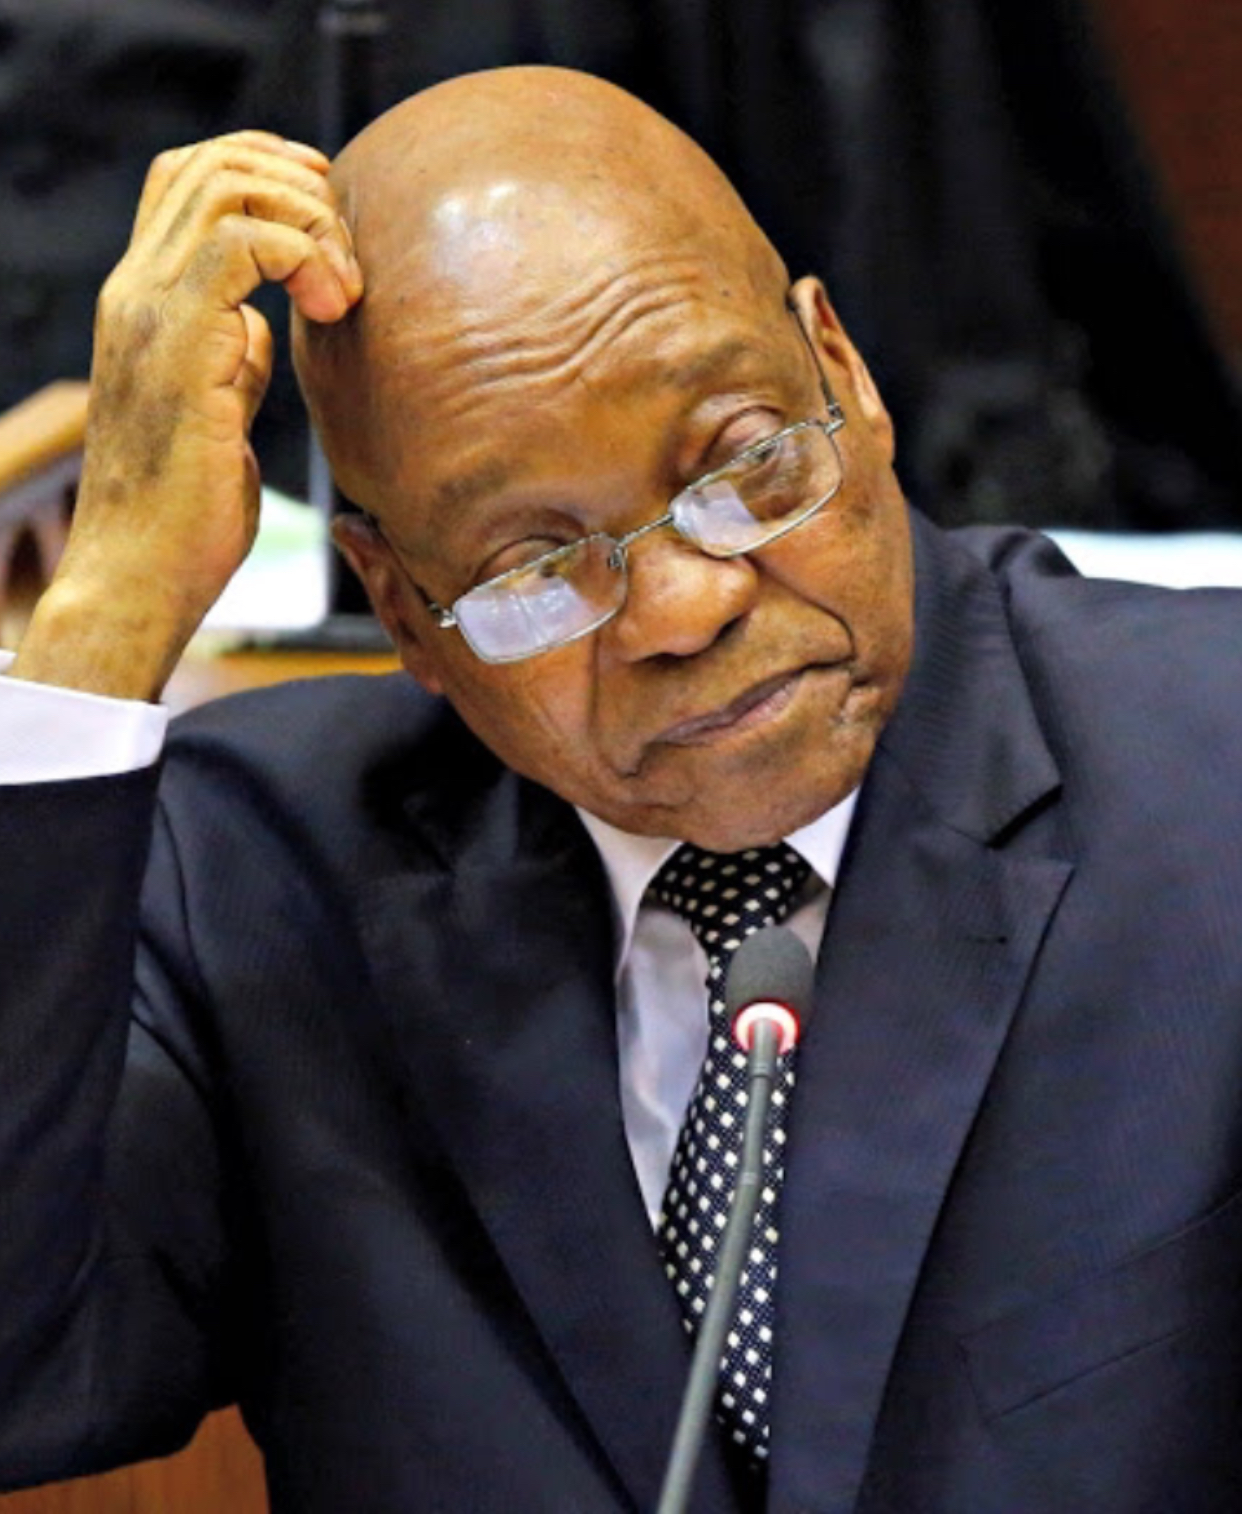 Warrant of arrest issued against former President Jacob Zuma